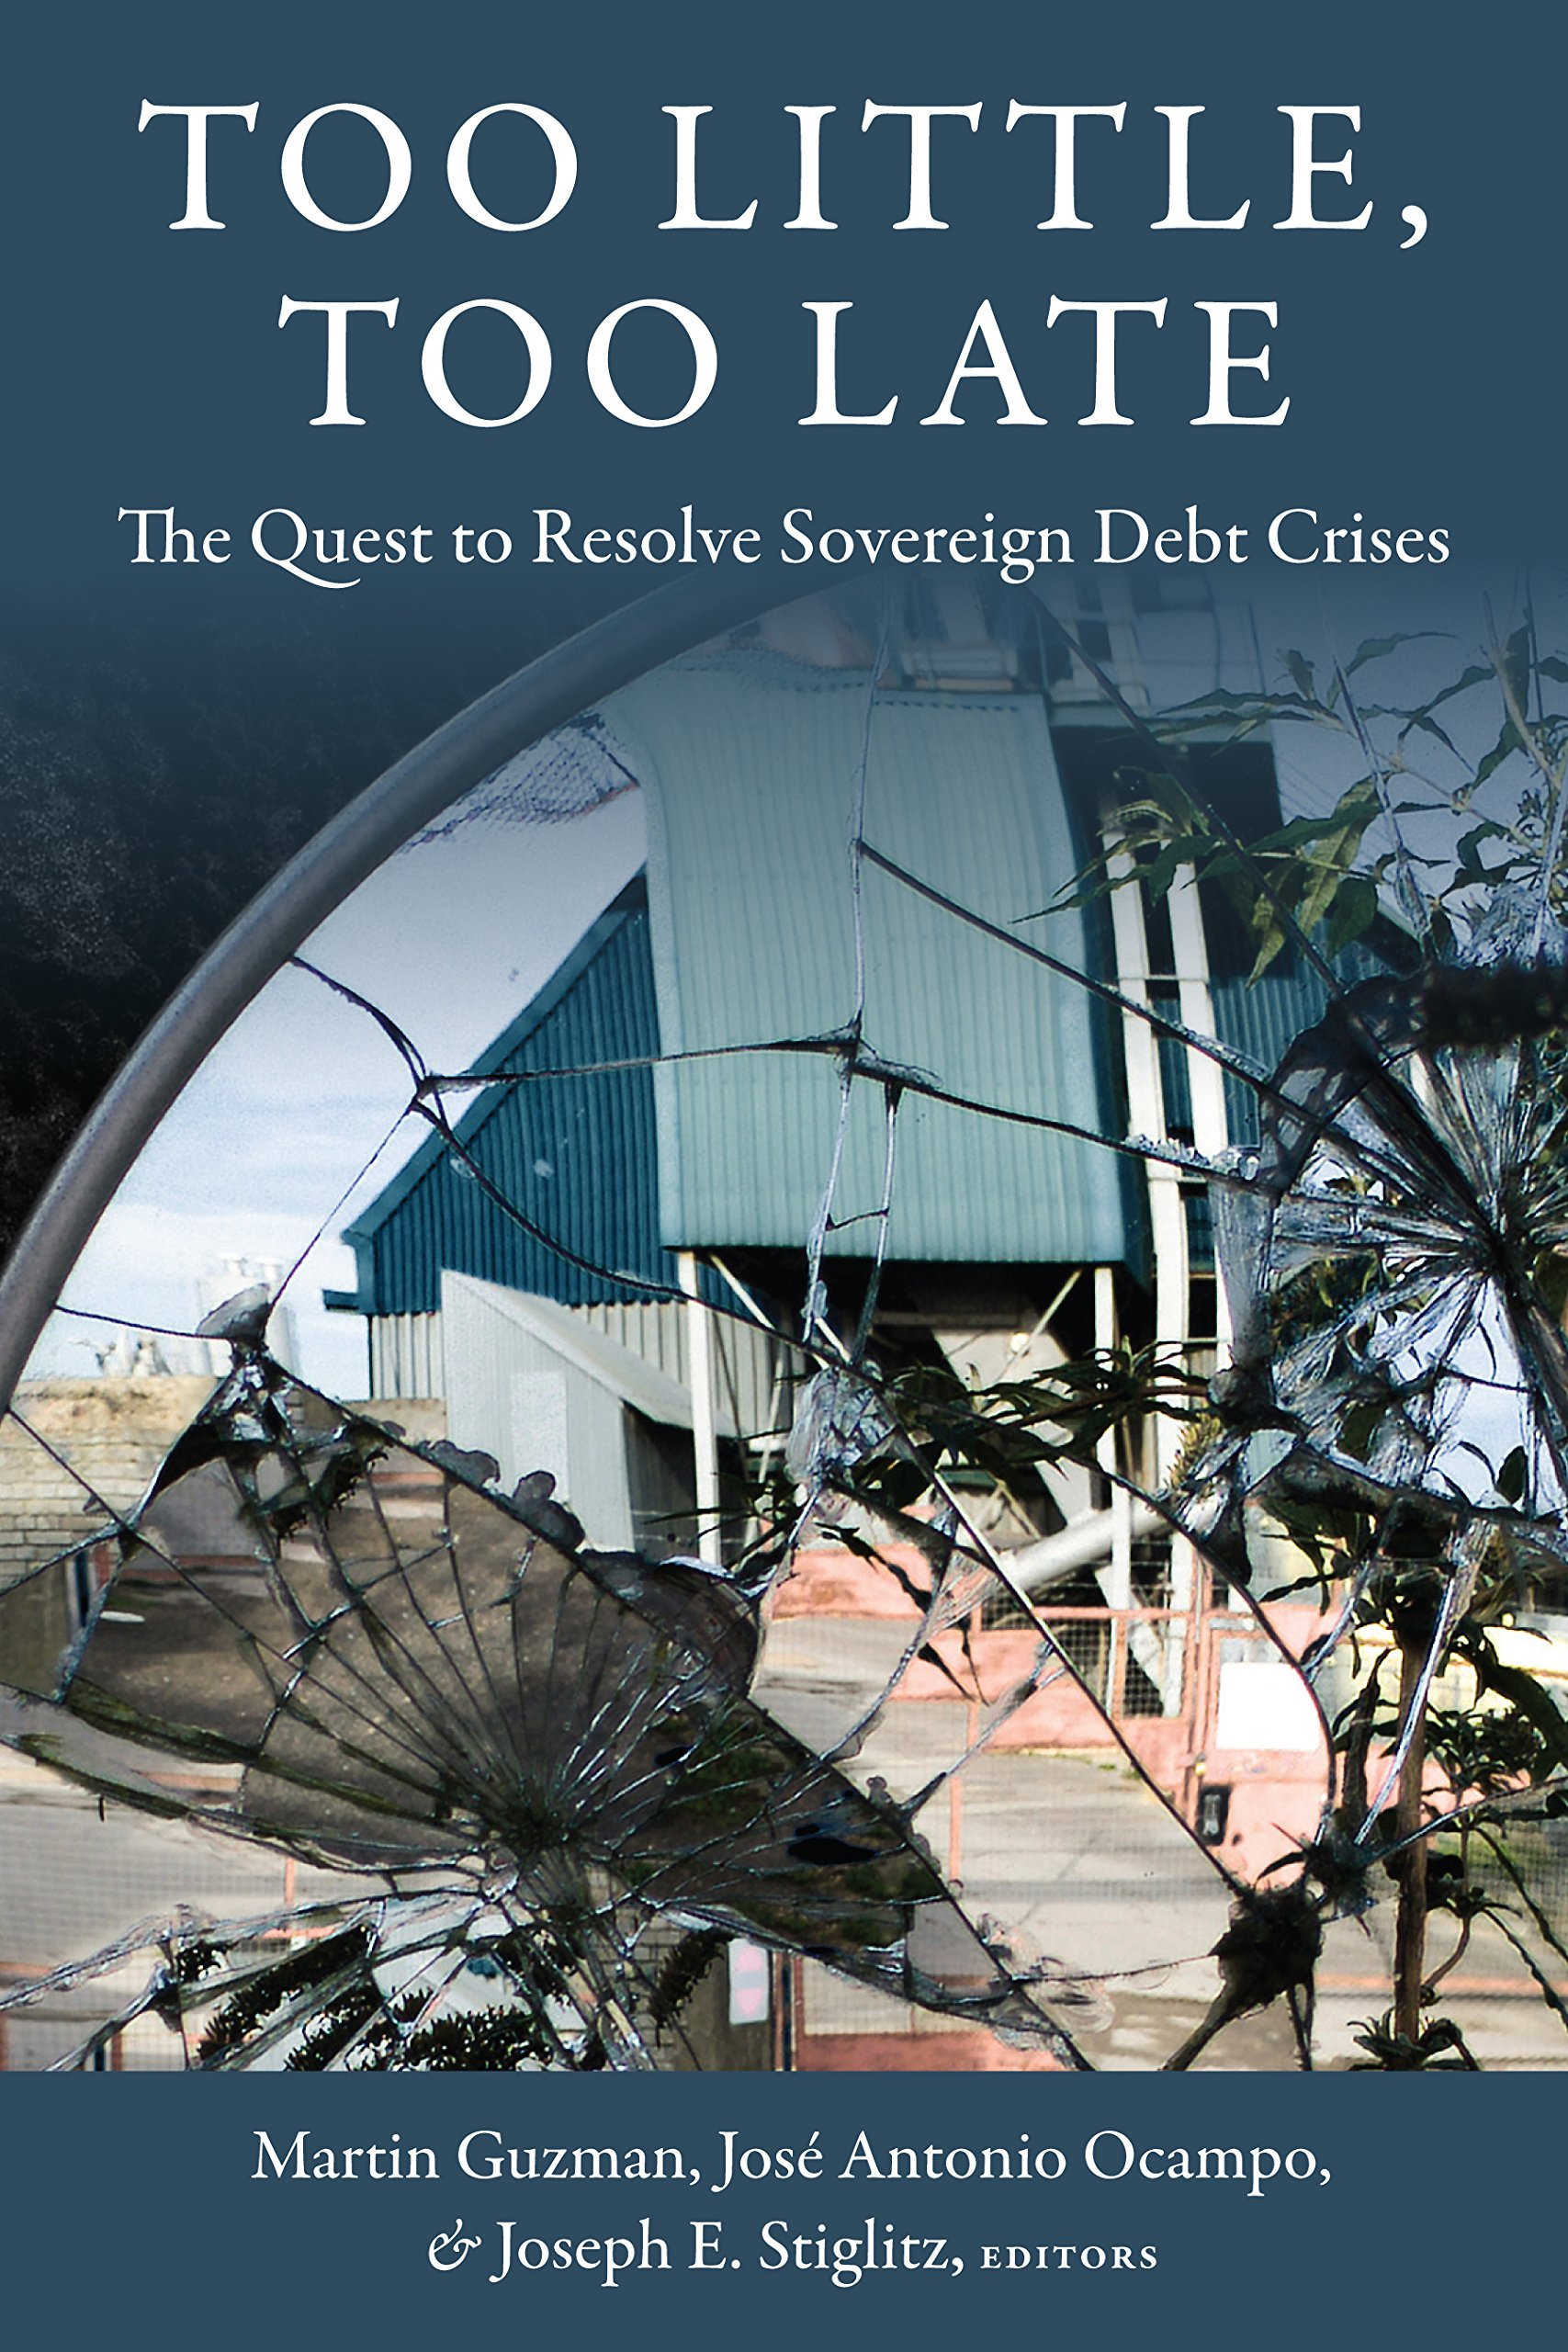 Too Little, Too Late: The Quest to Resolve Sovereign Debt Crises (Initiative for Policy Dialogue at Columbia: Challenges in Development and Globalization)